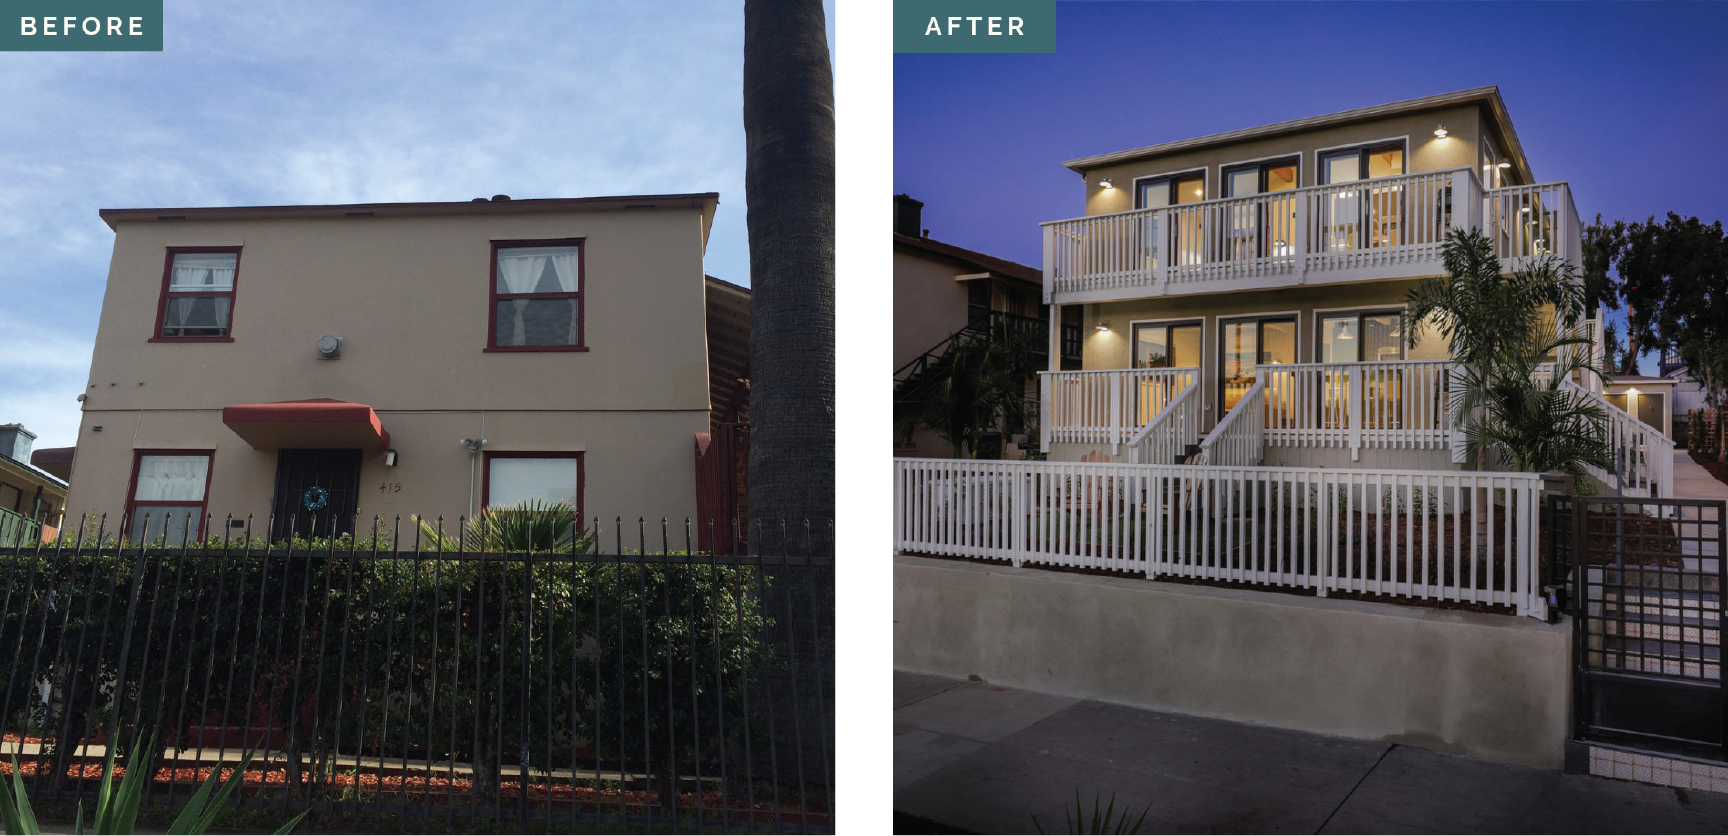 I'm so proud of this before and after. ☺️ We designed and permitted a gut remodel of this 4-Unit Apartment Building 🏢 in San Diego. It's in a historic district which meant lots of extra hoops to jump through. This was a tight collaboration 🤝 with the client... who was on a tight budget 💰 AND a short timeline 📆. We hustled and got it done. 💪🏻 So worth the effort.  The triple french doors let in tons of natural light ☀️ and the porches mean each unit has its own outdoor space... so rare for an apartment.  The interior is just as cool. 😎 Check it out in my gallery.